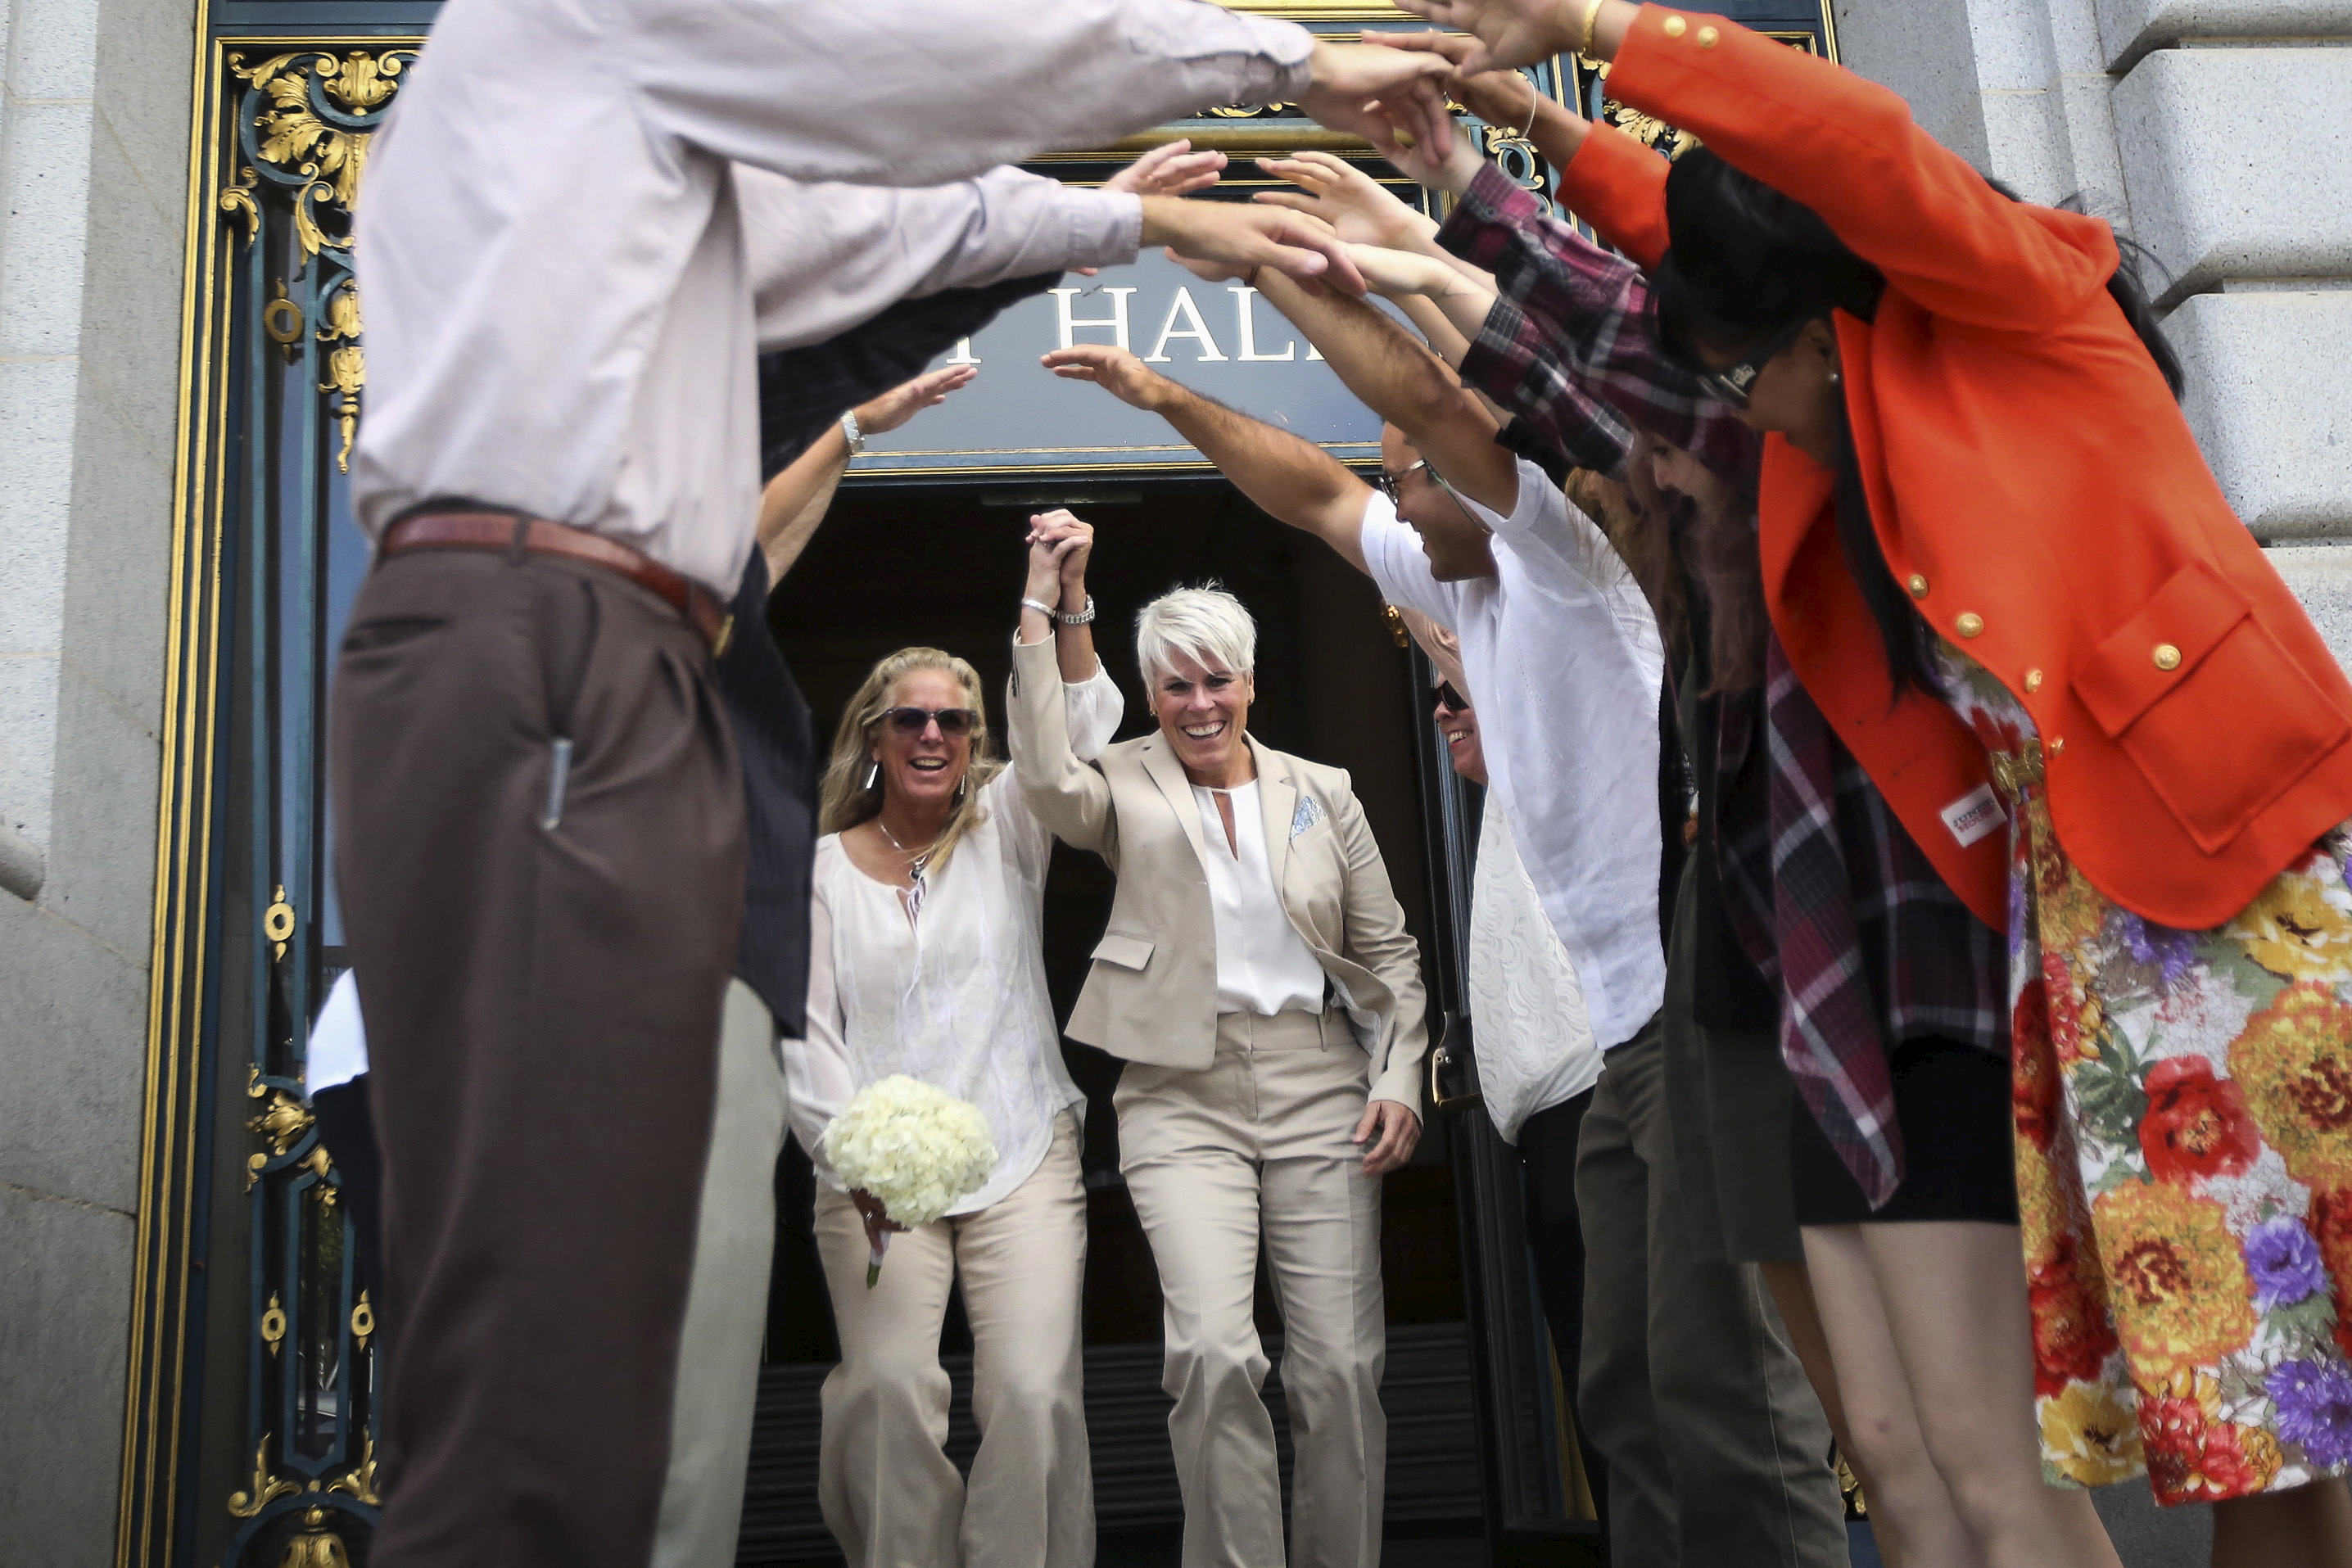 "Stacy Wood, (L) and her wife Michele Barr leave San Francisco City Hall after getting married in San Francisco, California June 26, 2015. Earlier in the day the Supreme Court ruled 5-4 that the Constitution's guarantees of due process and equal protection under the law mean that states cannot ban same-sex marriages. With the ruling, gay marriage will become legal in all 50 states. Barr and Wood have been together for almost 29 years. ""We didn't realize when we picked this date that it would be such a monumental day for the country,"" said Barr. ""We just thought the Supreme Court wanted to give us a really great wedding gift. Now we just need to know where to send the thank you card."" REUTERS/Elijah Nouvelage TPX IMAGES OF THE DAY - RTX1I0FZ"